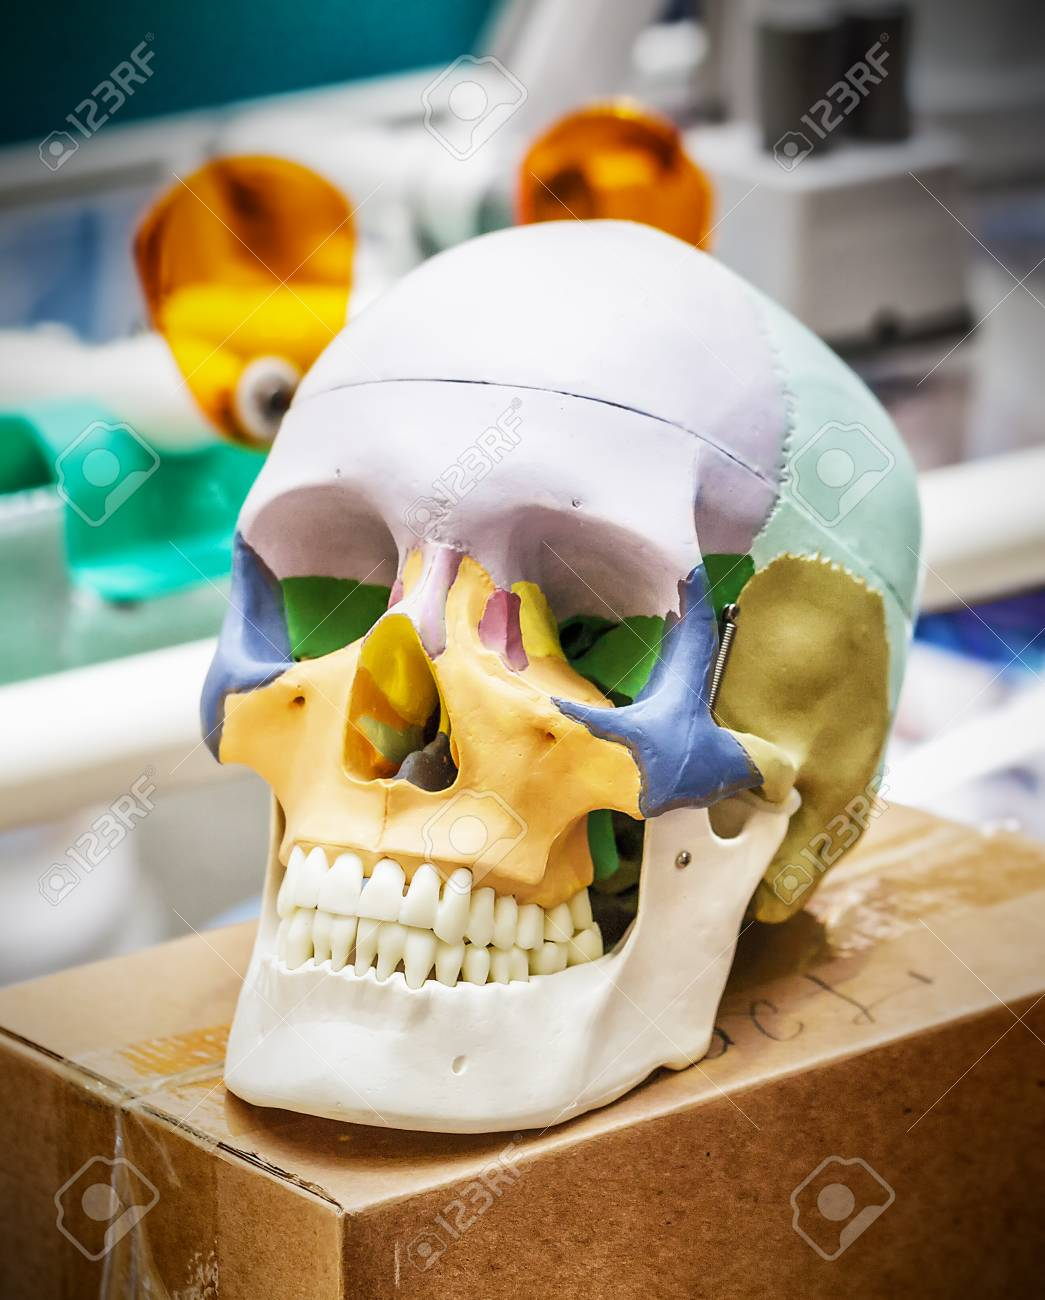 Anatomy Human Skull Model Stock Photo Picture And Royalty Free